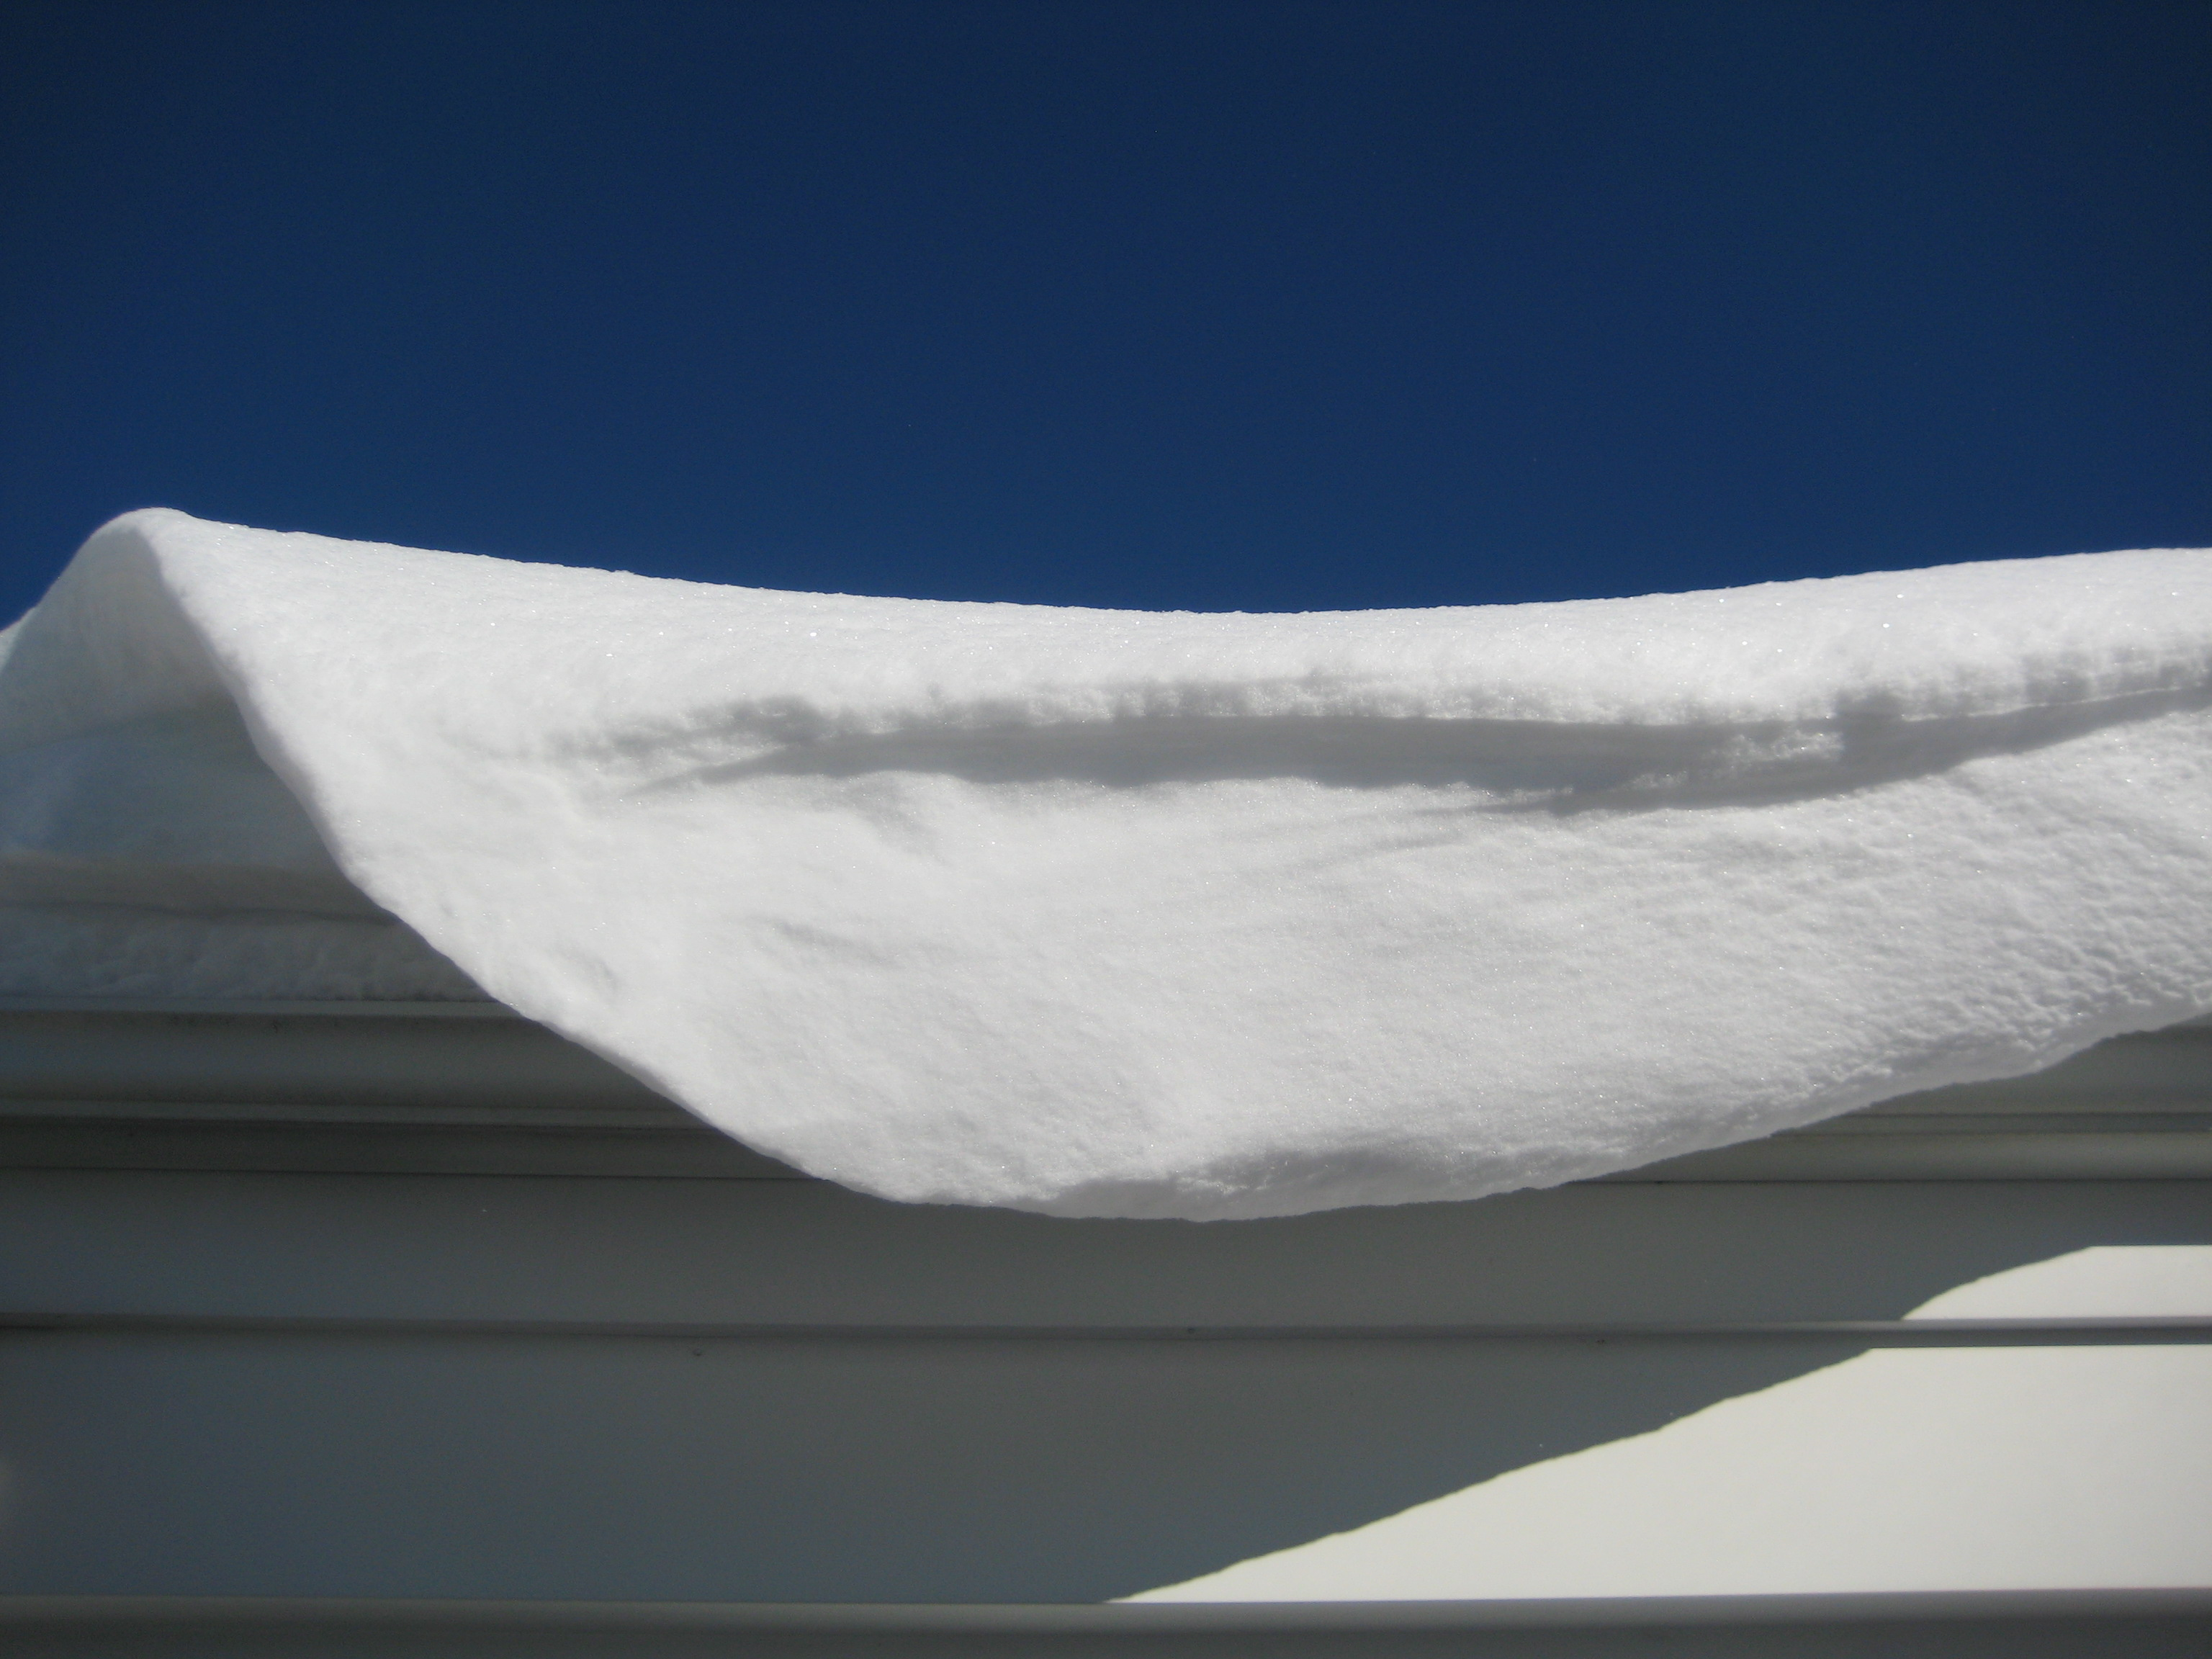 Glimpse of solace: snow in sunshine